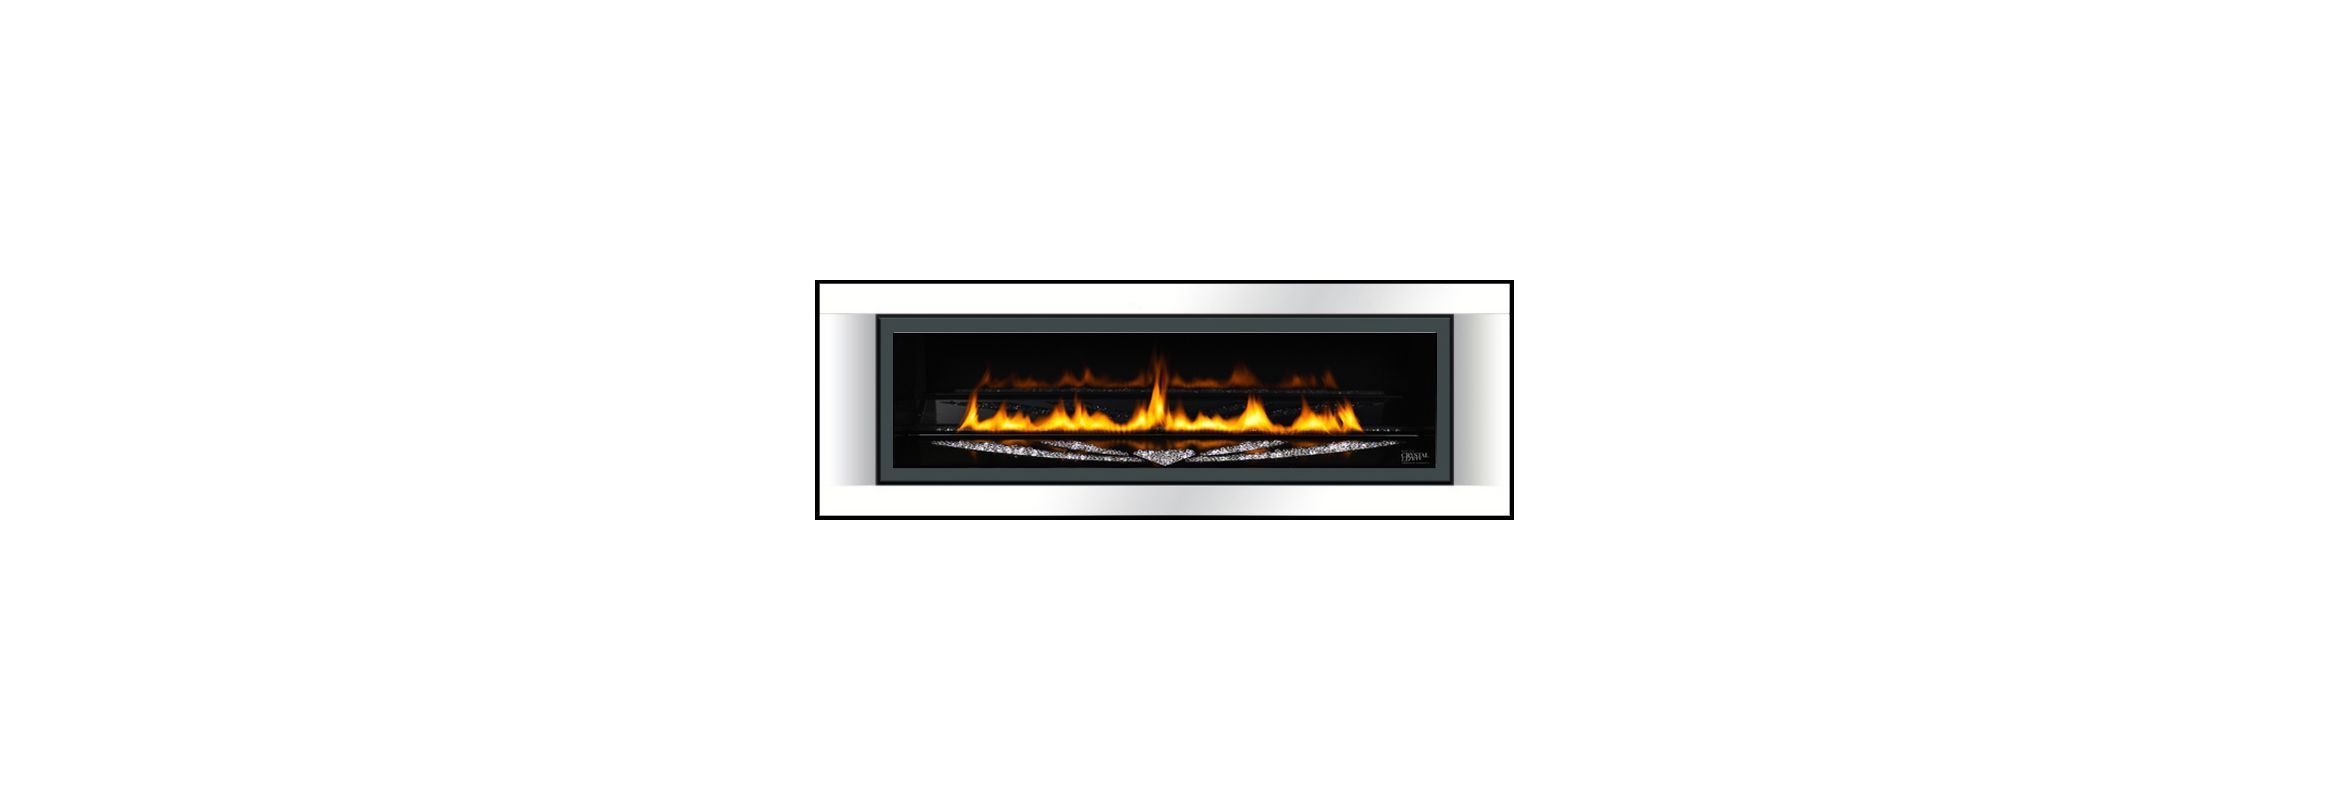 napoleon lhds50 linear fireplace surround for napoleon lhd50ss and